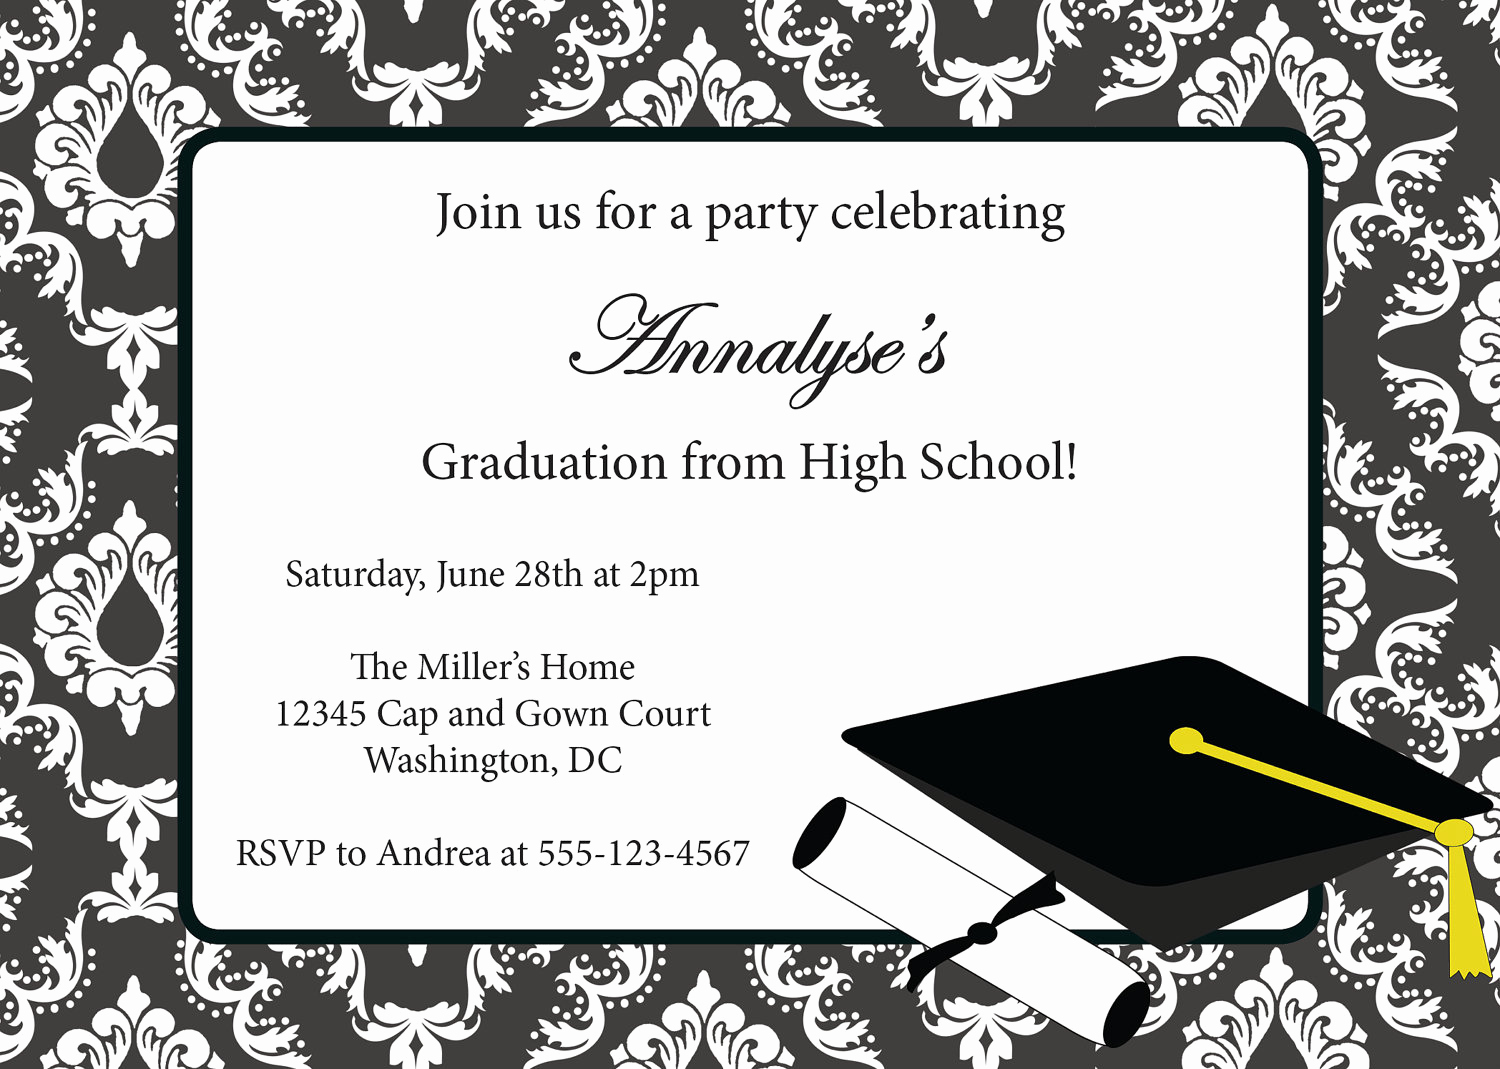 Free Printable Graduation Invitation Templates New Free Printable Graduation Party Invitations Templates